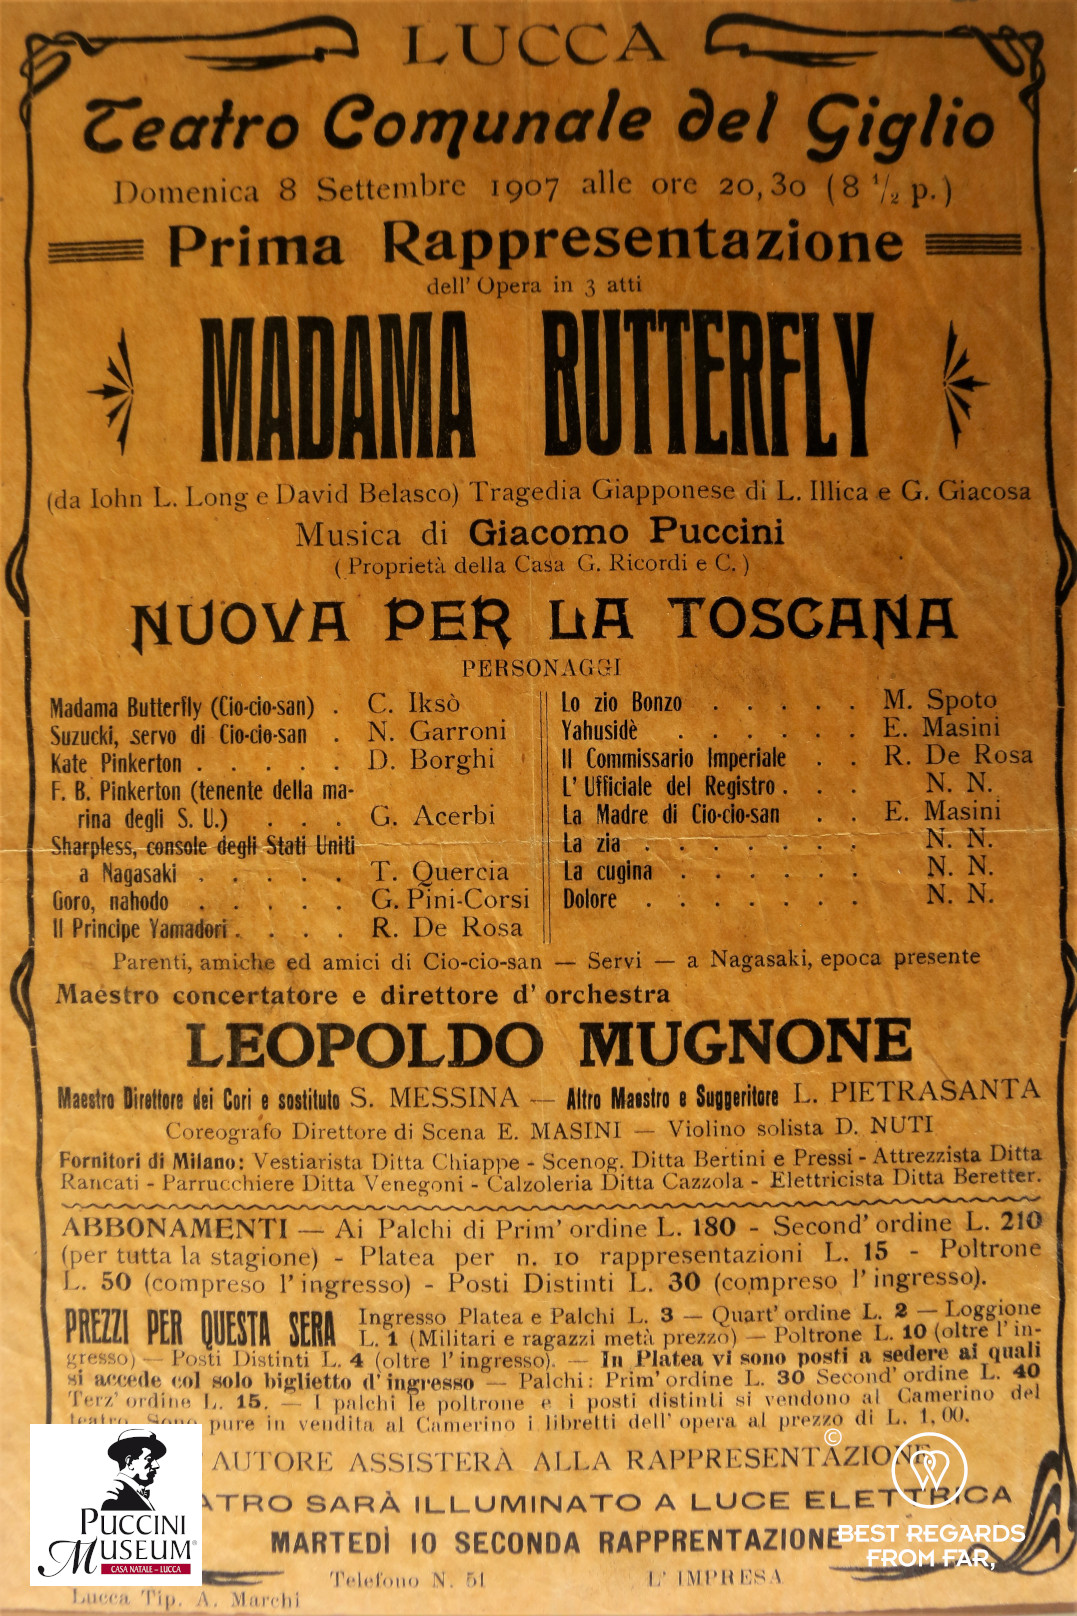 Madam Butterfly playbill, Puccini birth home museum, Lucca, Italy.